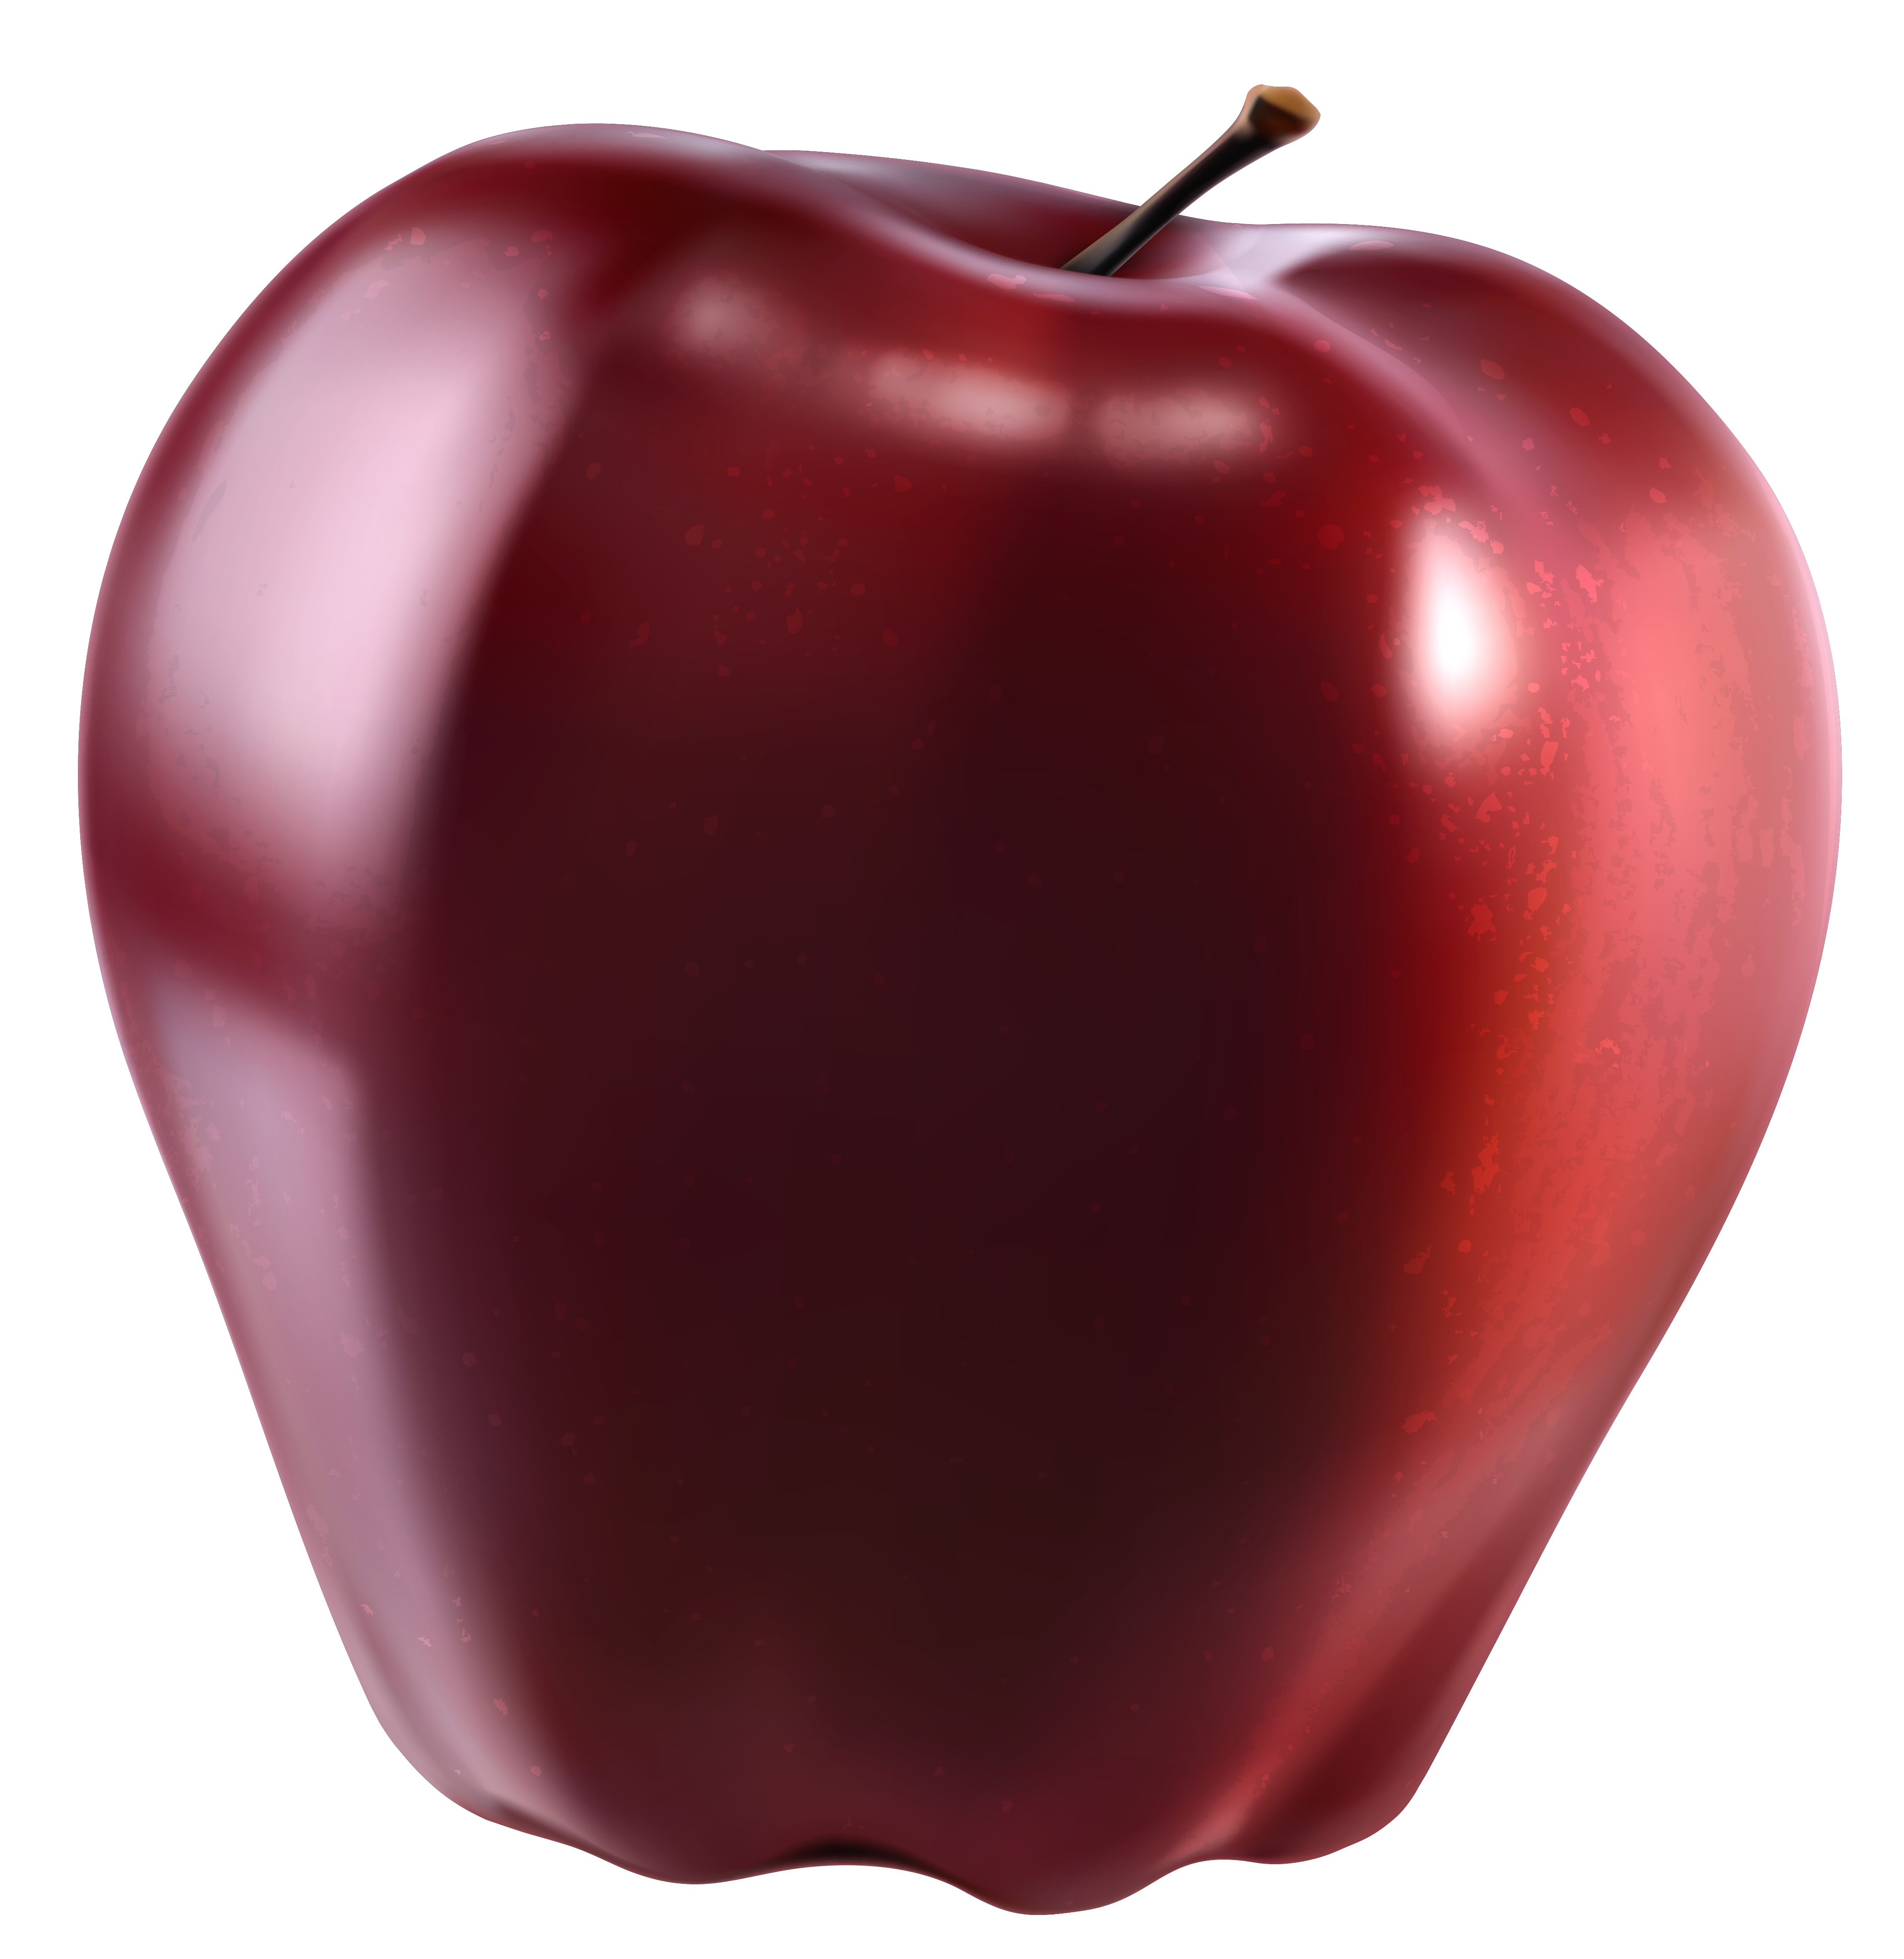 Apple clipart red apple Red Yopriceville  Gallery Picture